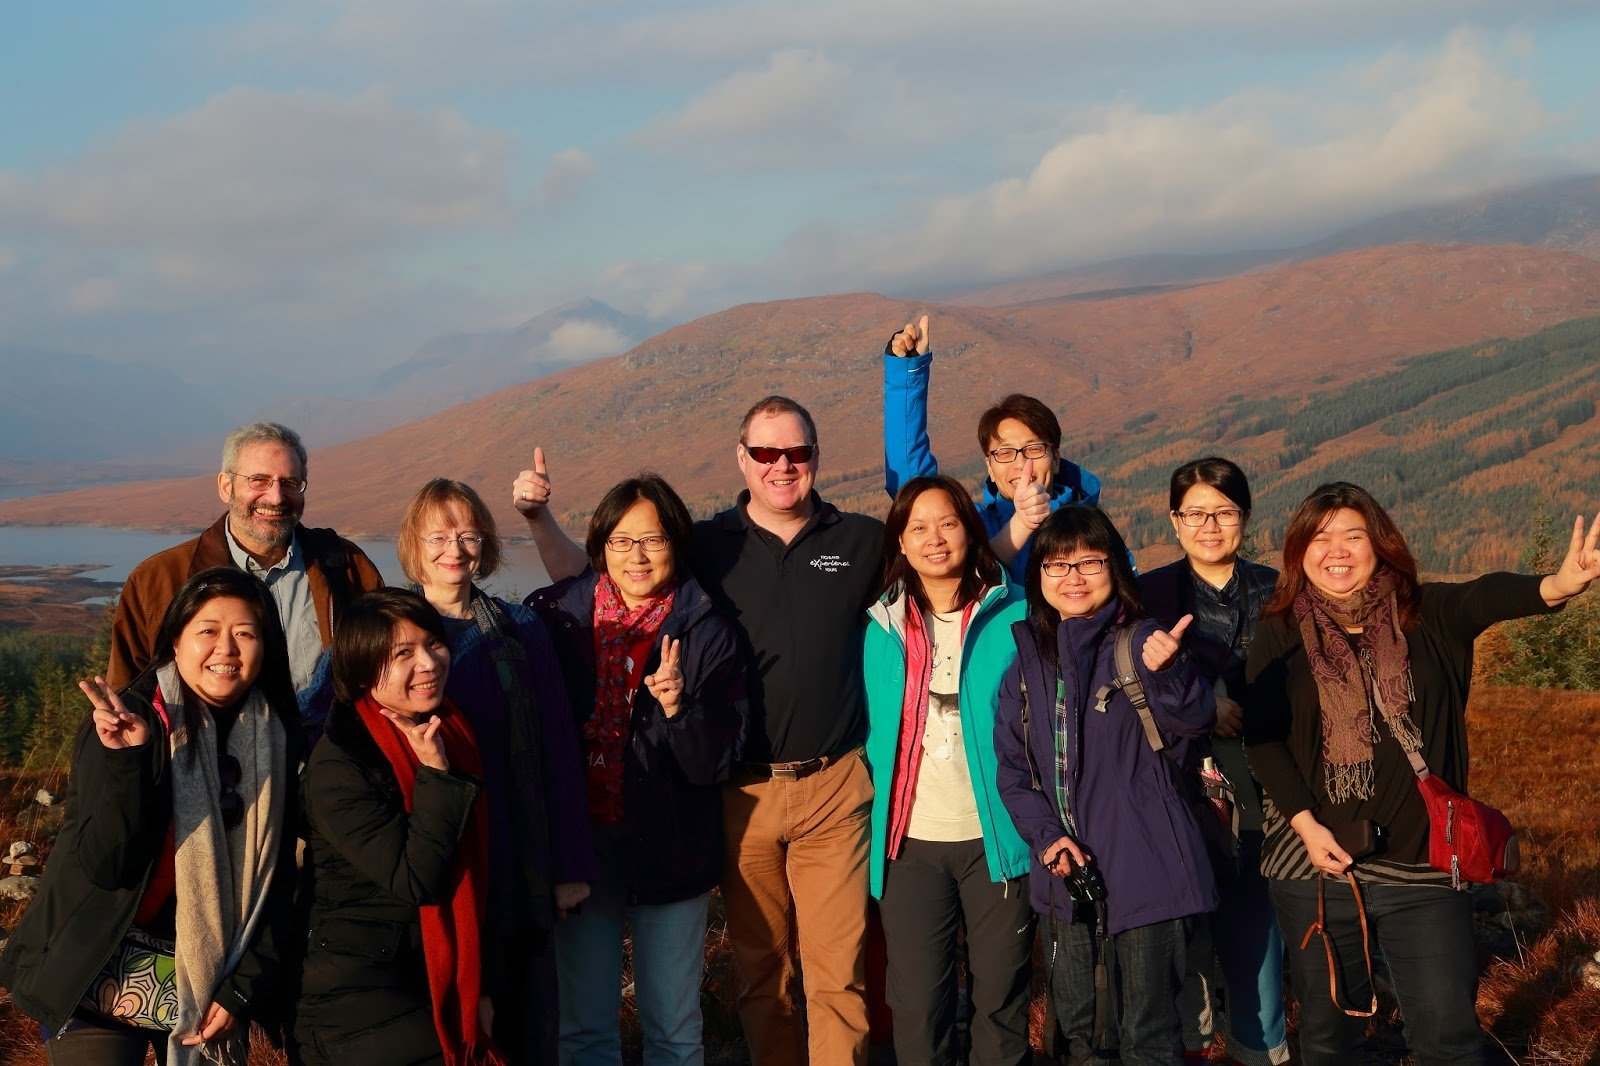 Three Day Highland Tour & New Friends from Hong Kong